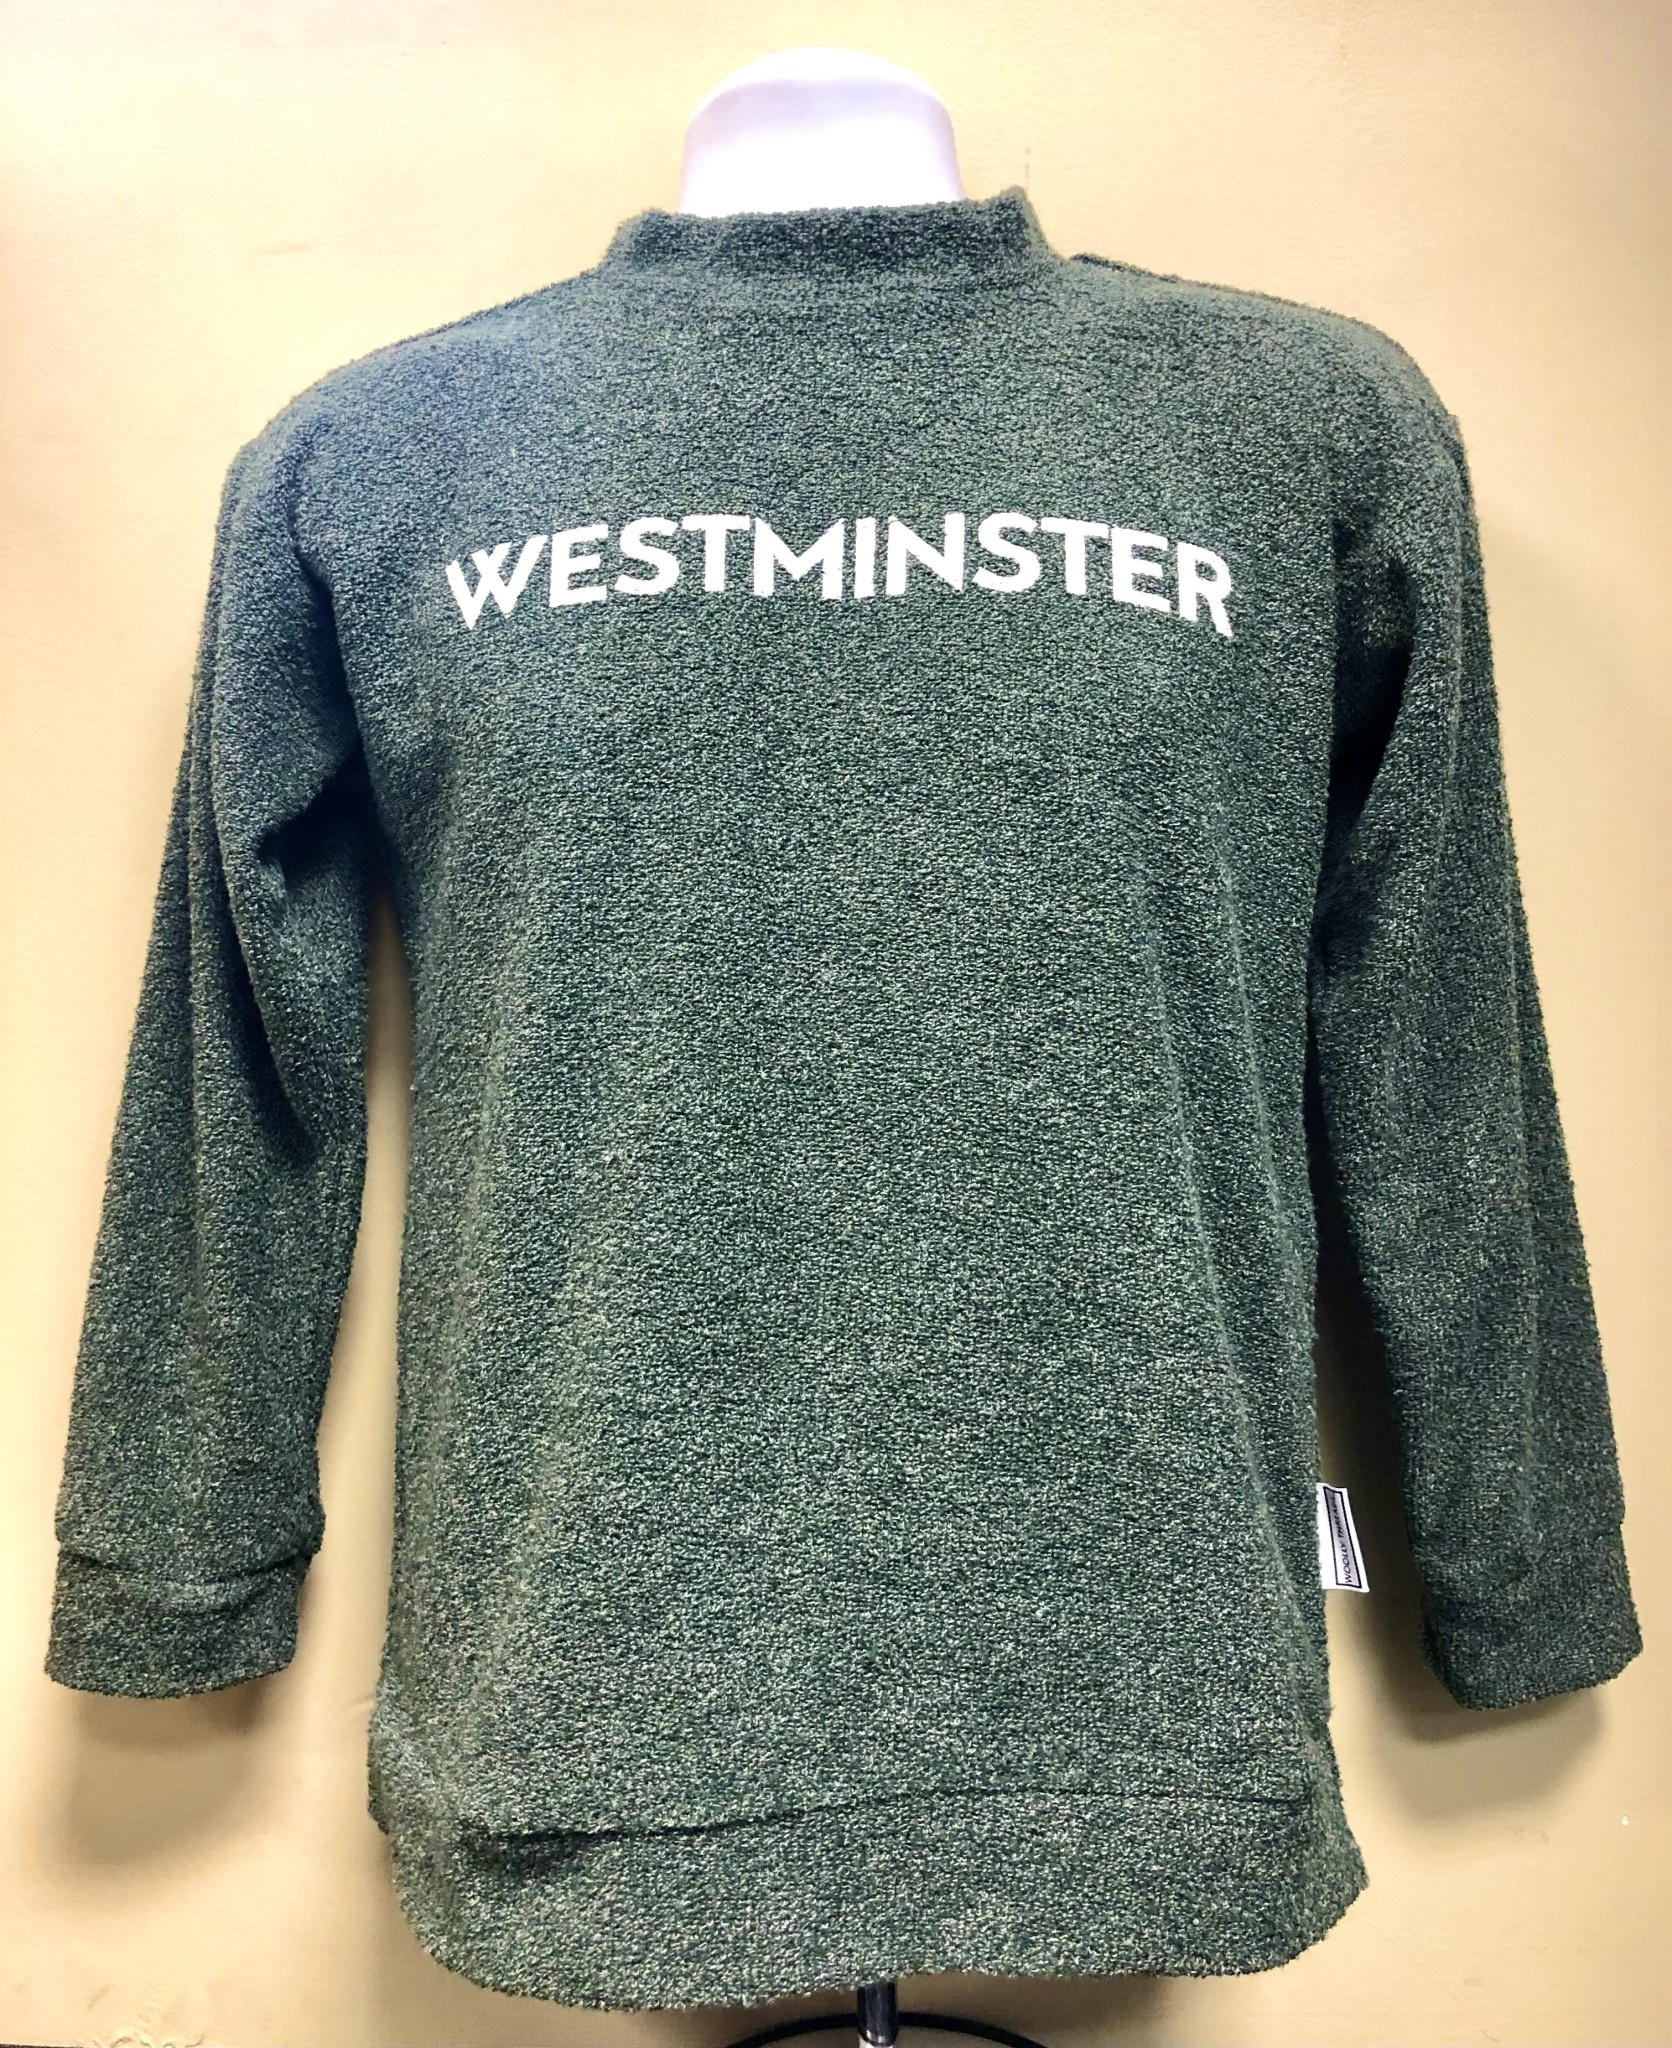 Sweatshirt: Woolly Threads Women's Heathered Green